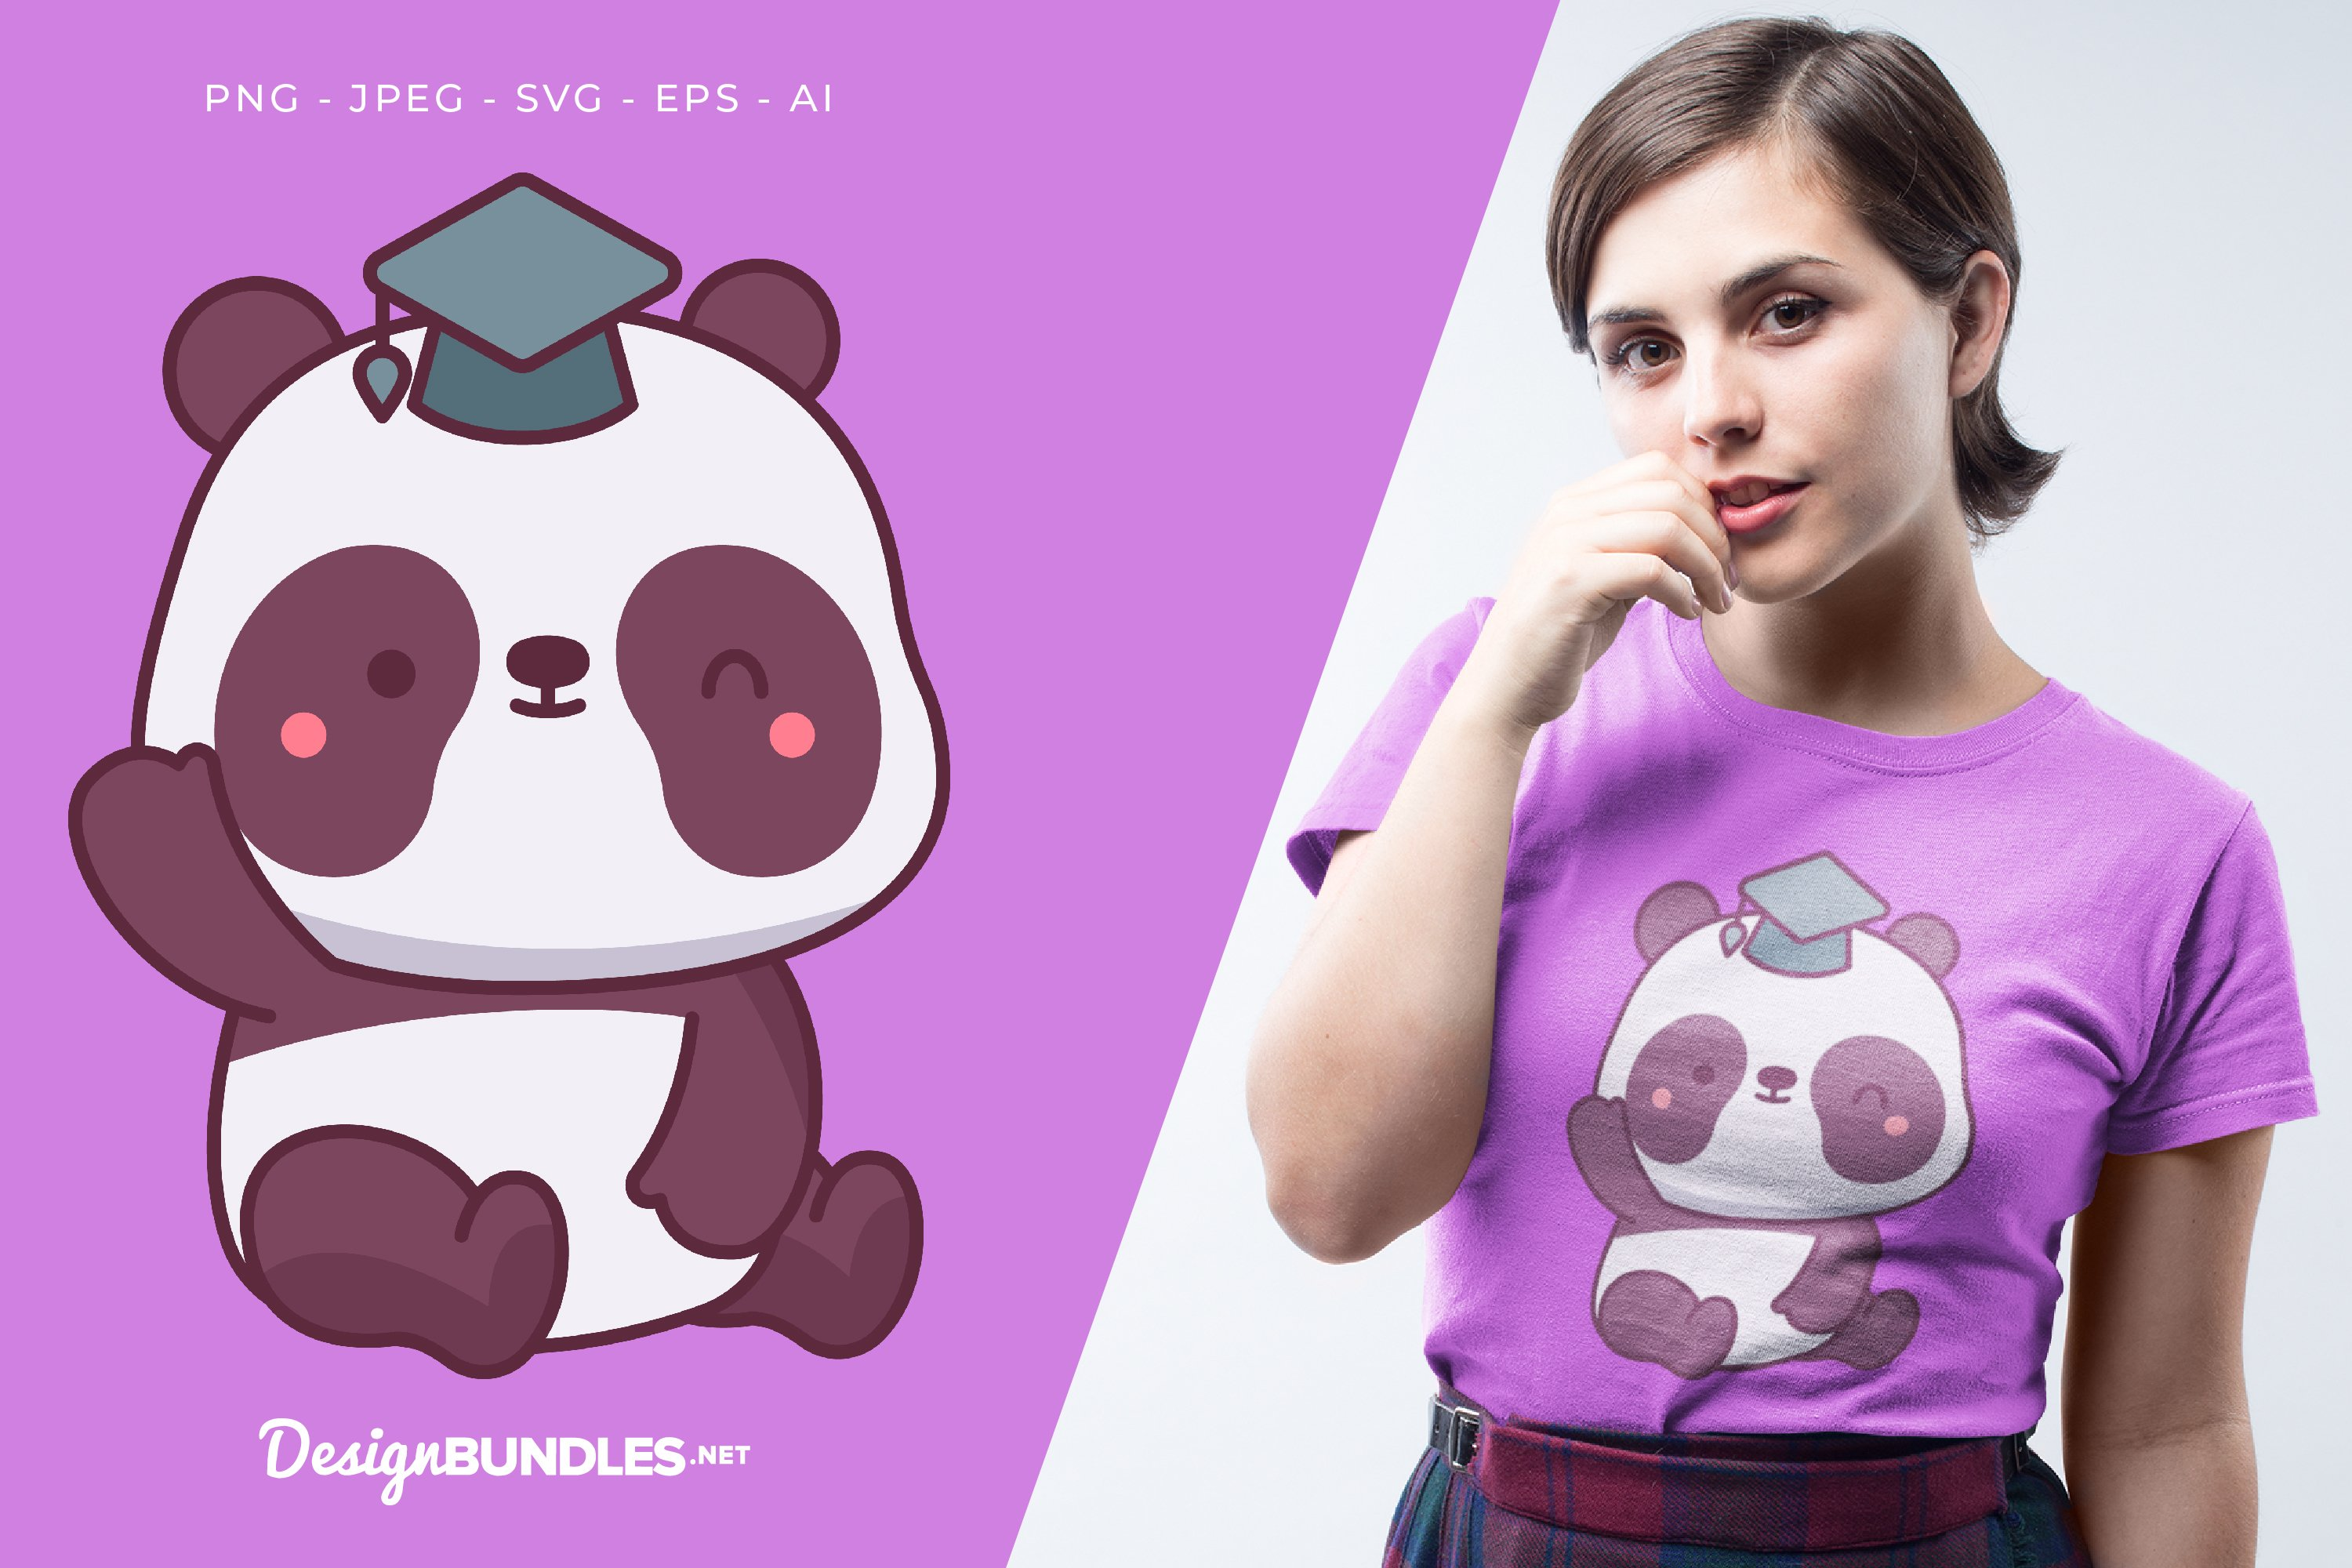 Cute Panda Vector Illustration For T-Shirt Design example image 1